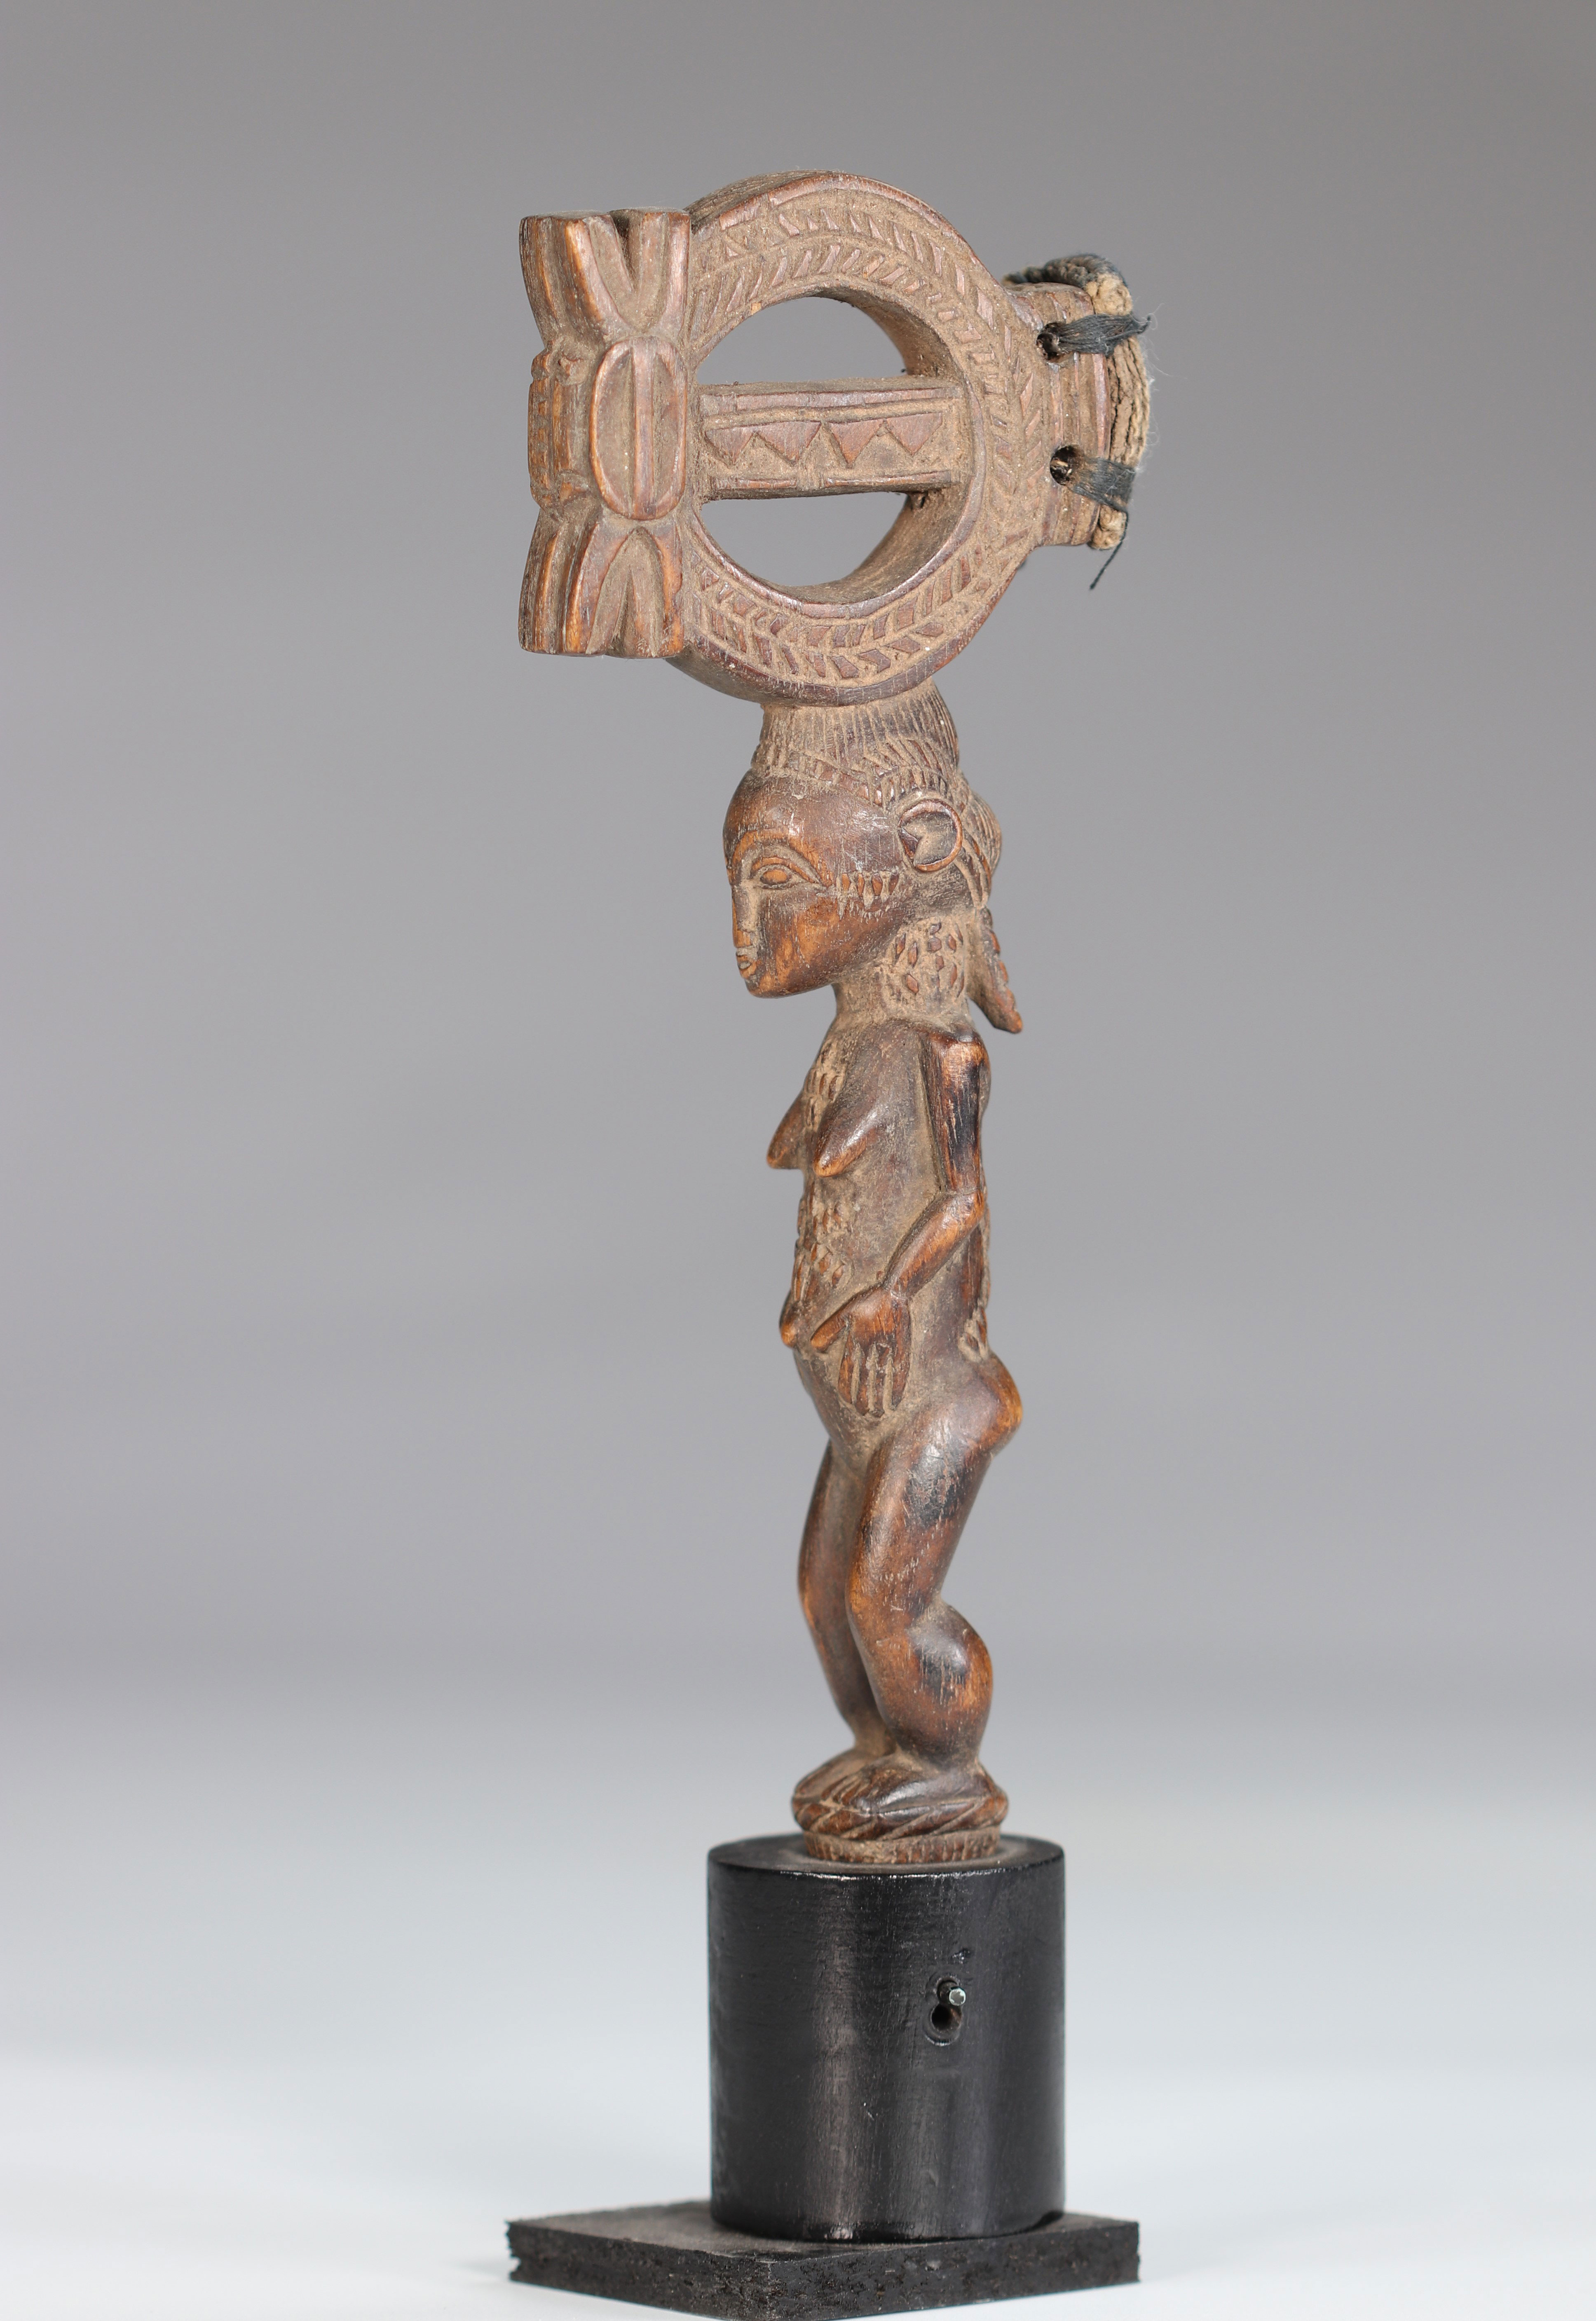 Baoule wooden hammer carved of a female character - Image 6 of 6